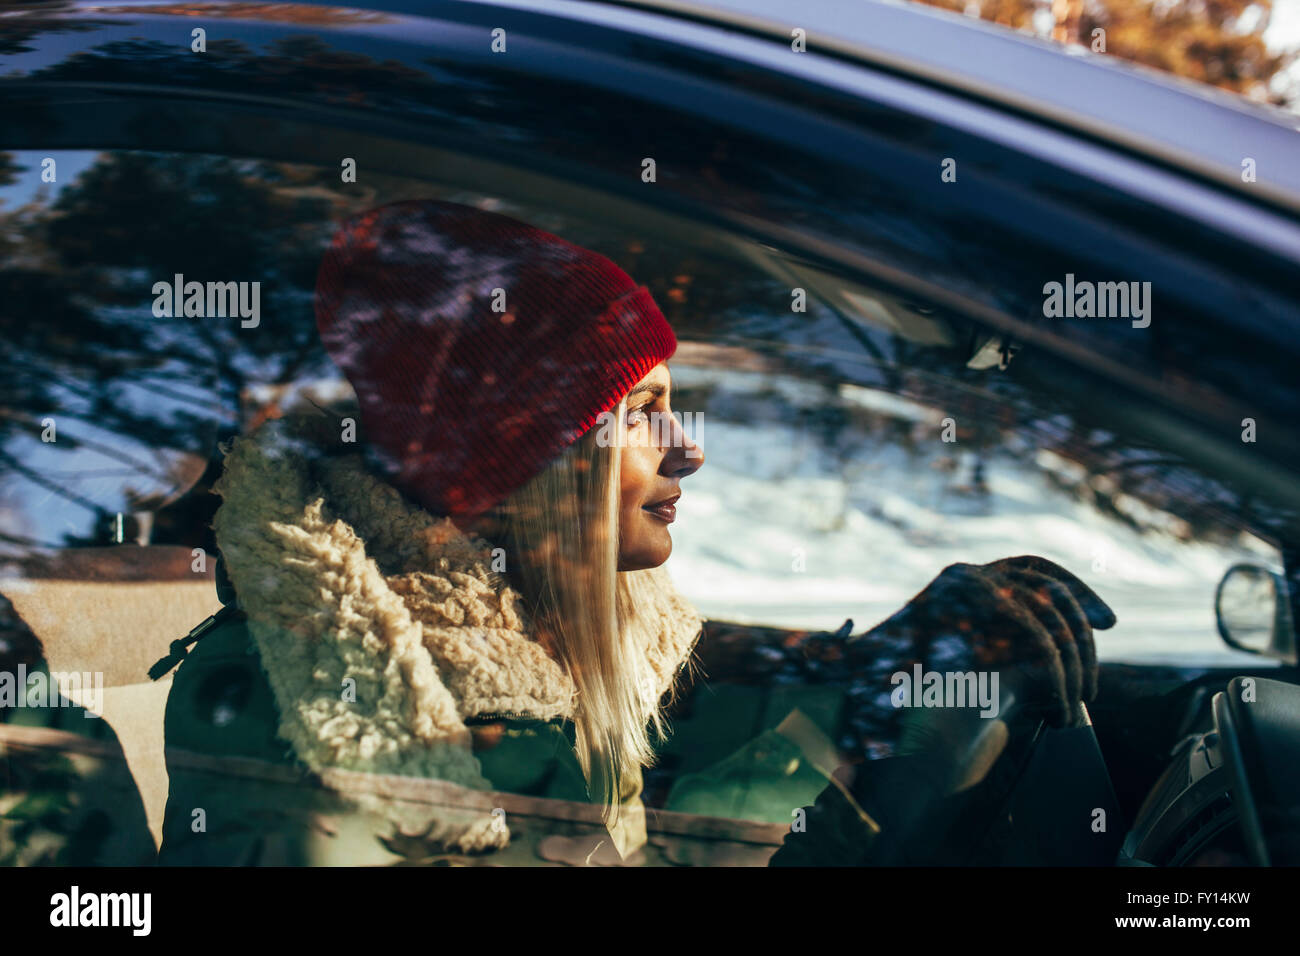 Woman in warm clothing driving car - Stock Image